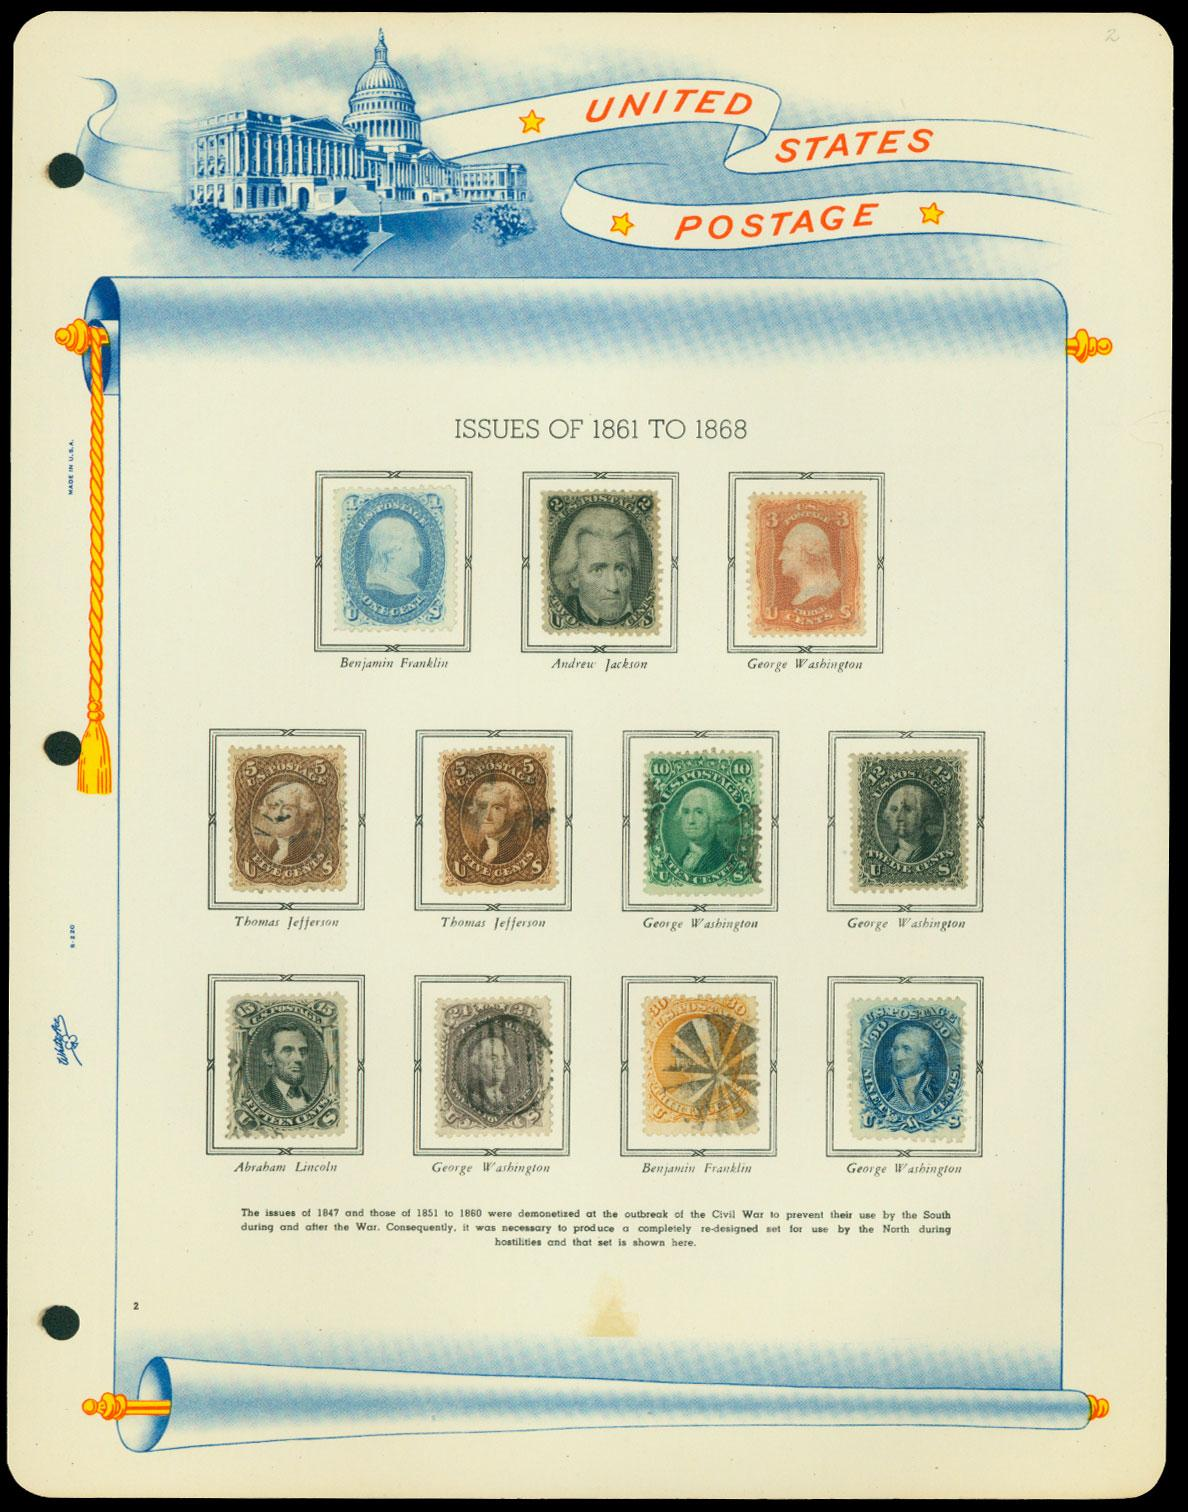 Rasdale Stamp Company in Westmont, IL to Hold November 23-24, 2019 Live Auction